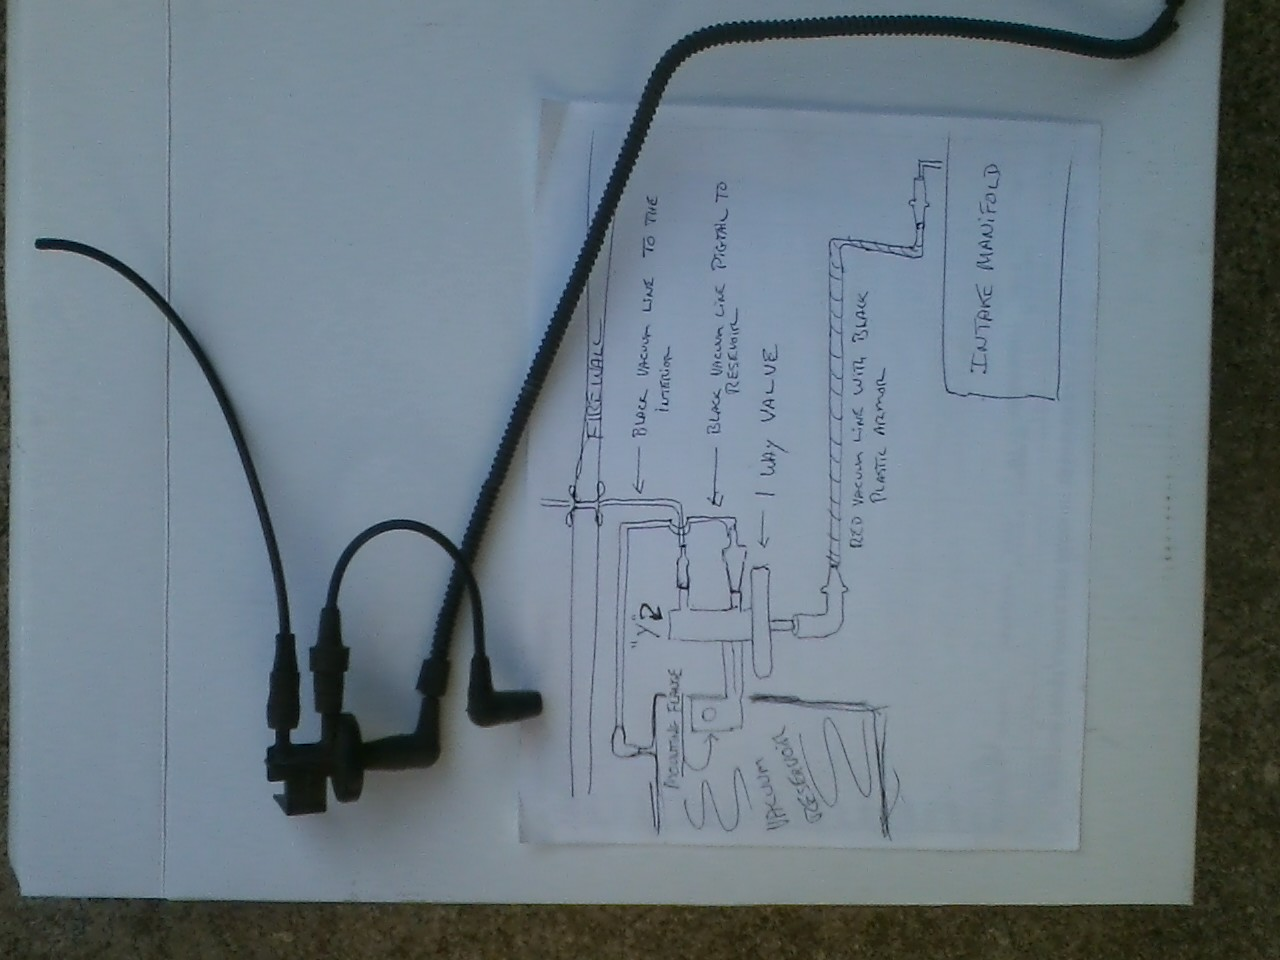 99 Dodge Mins Wiring Harness Diagram 99 Dodge Parts Wiring